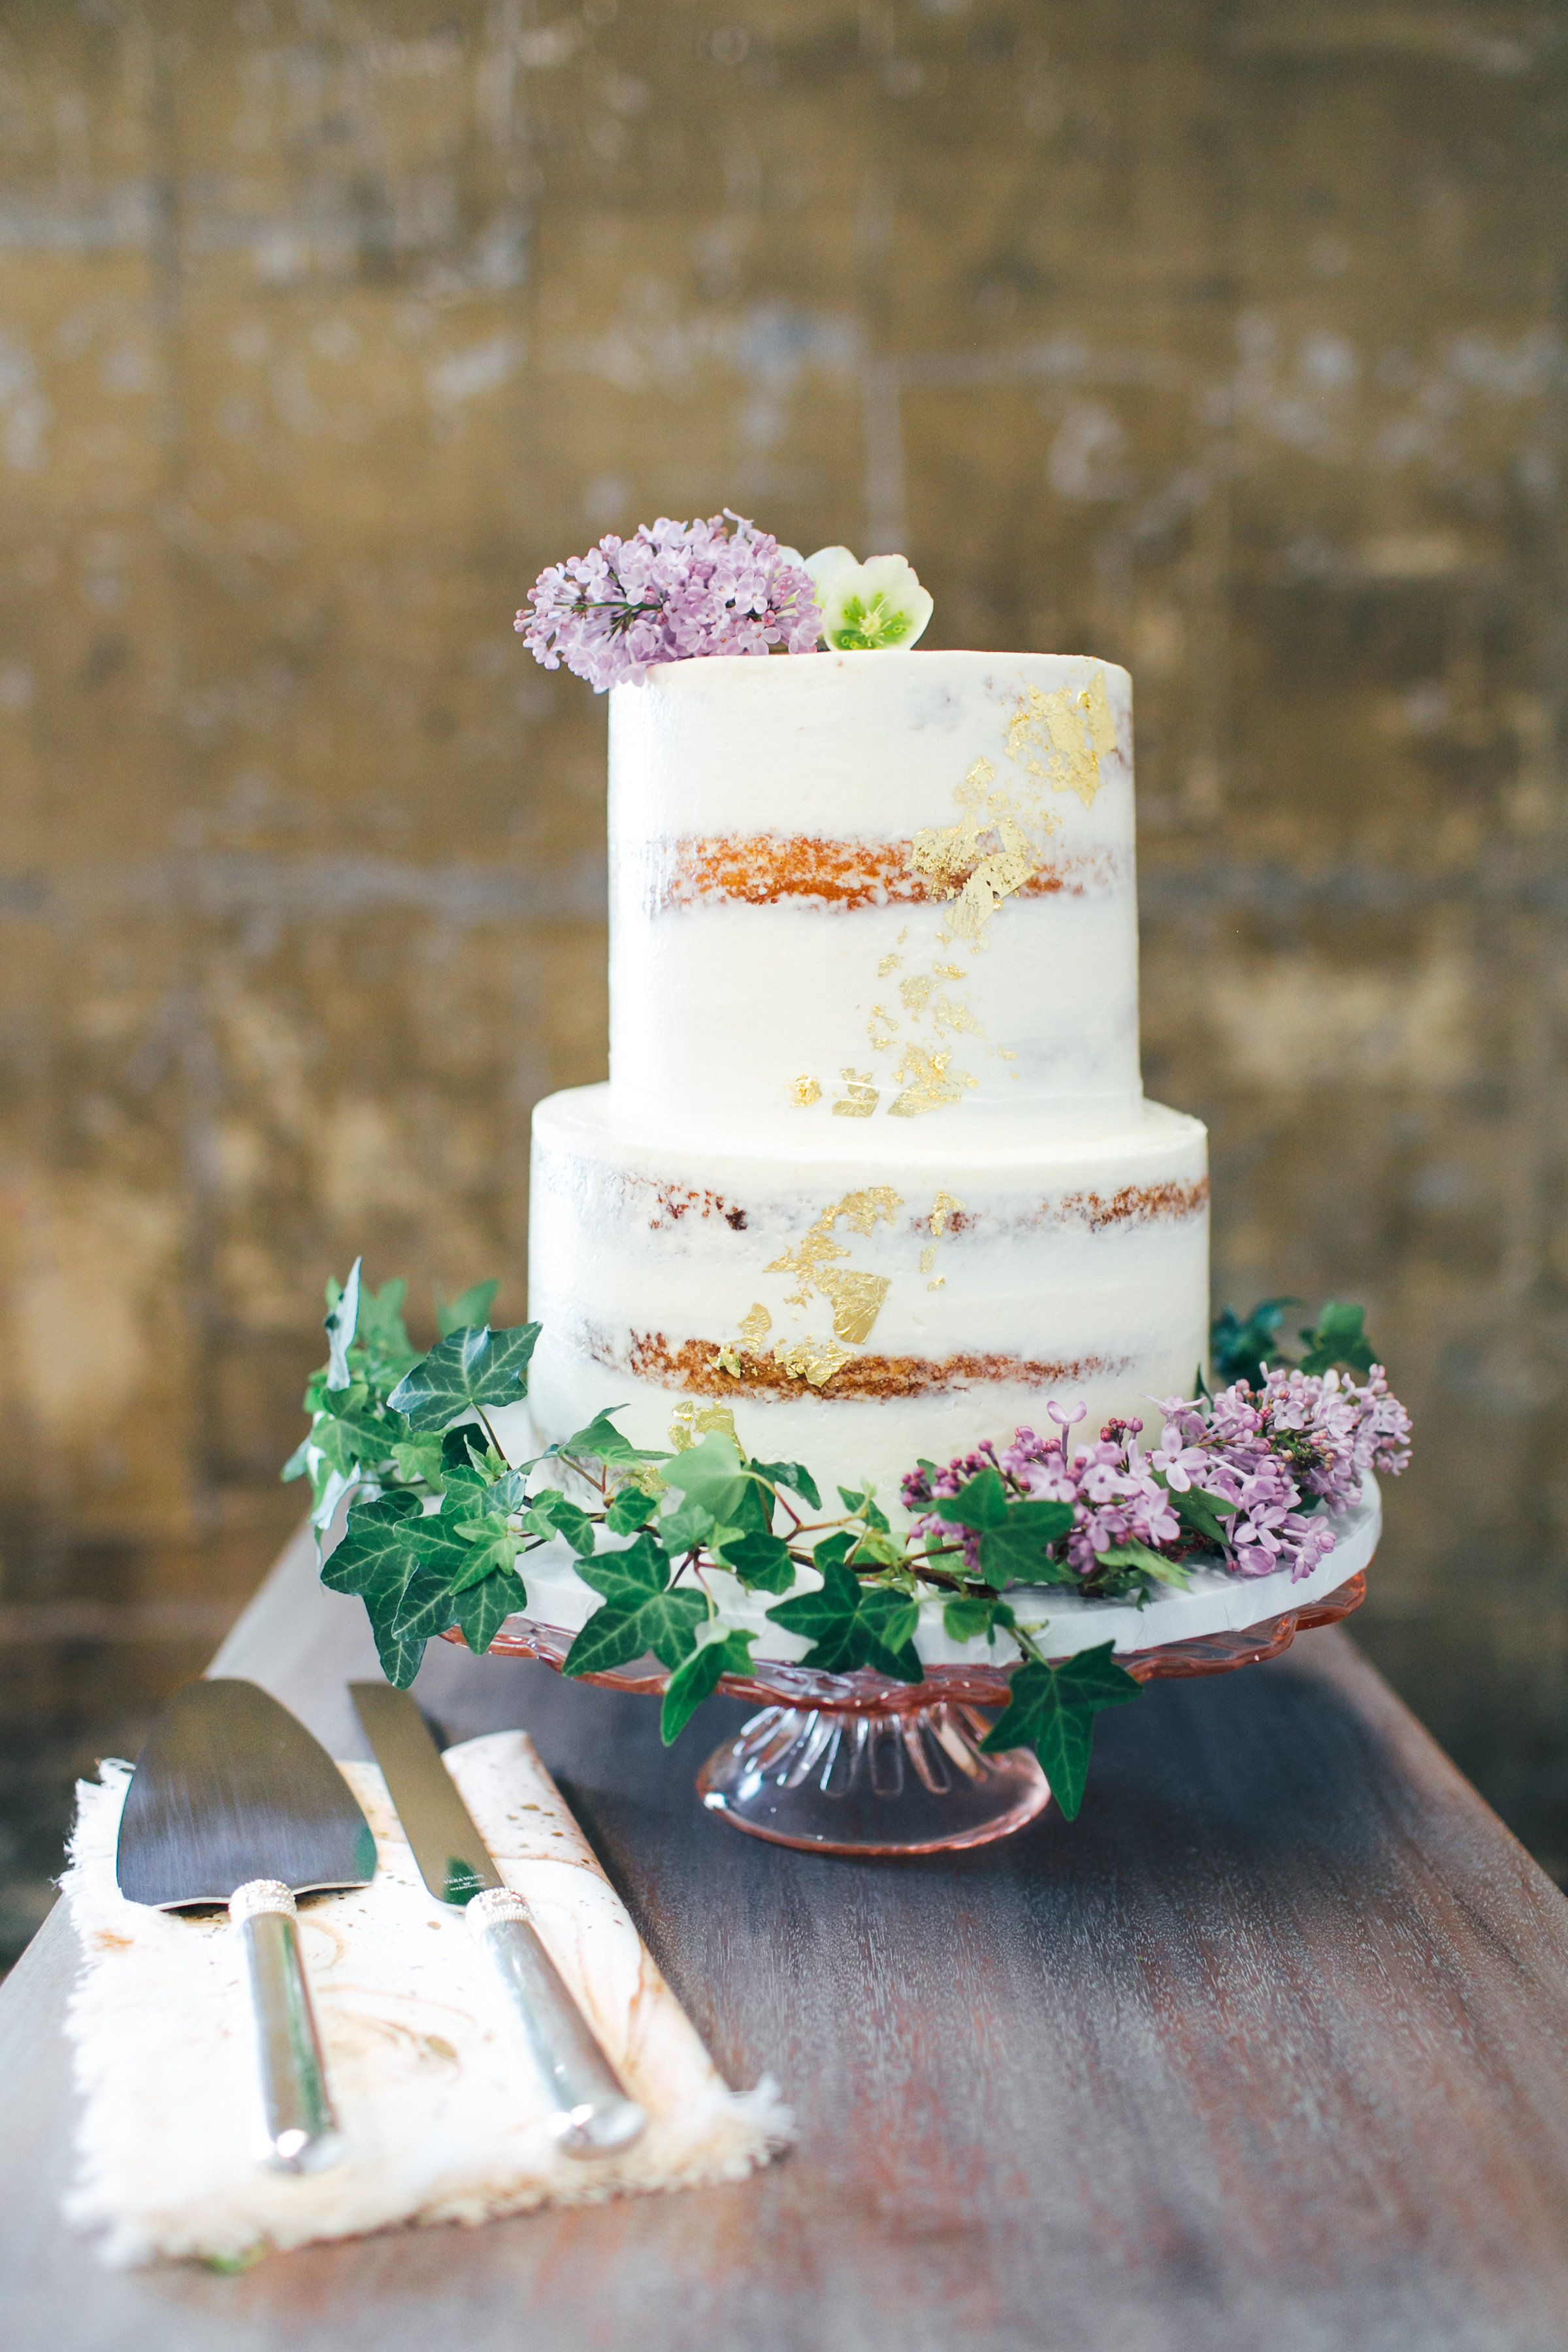 wedding cakes los angeles prices%0A Cake